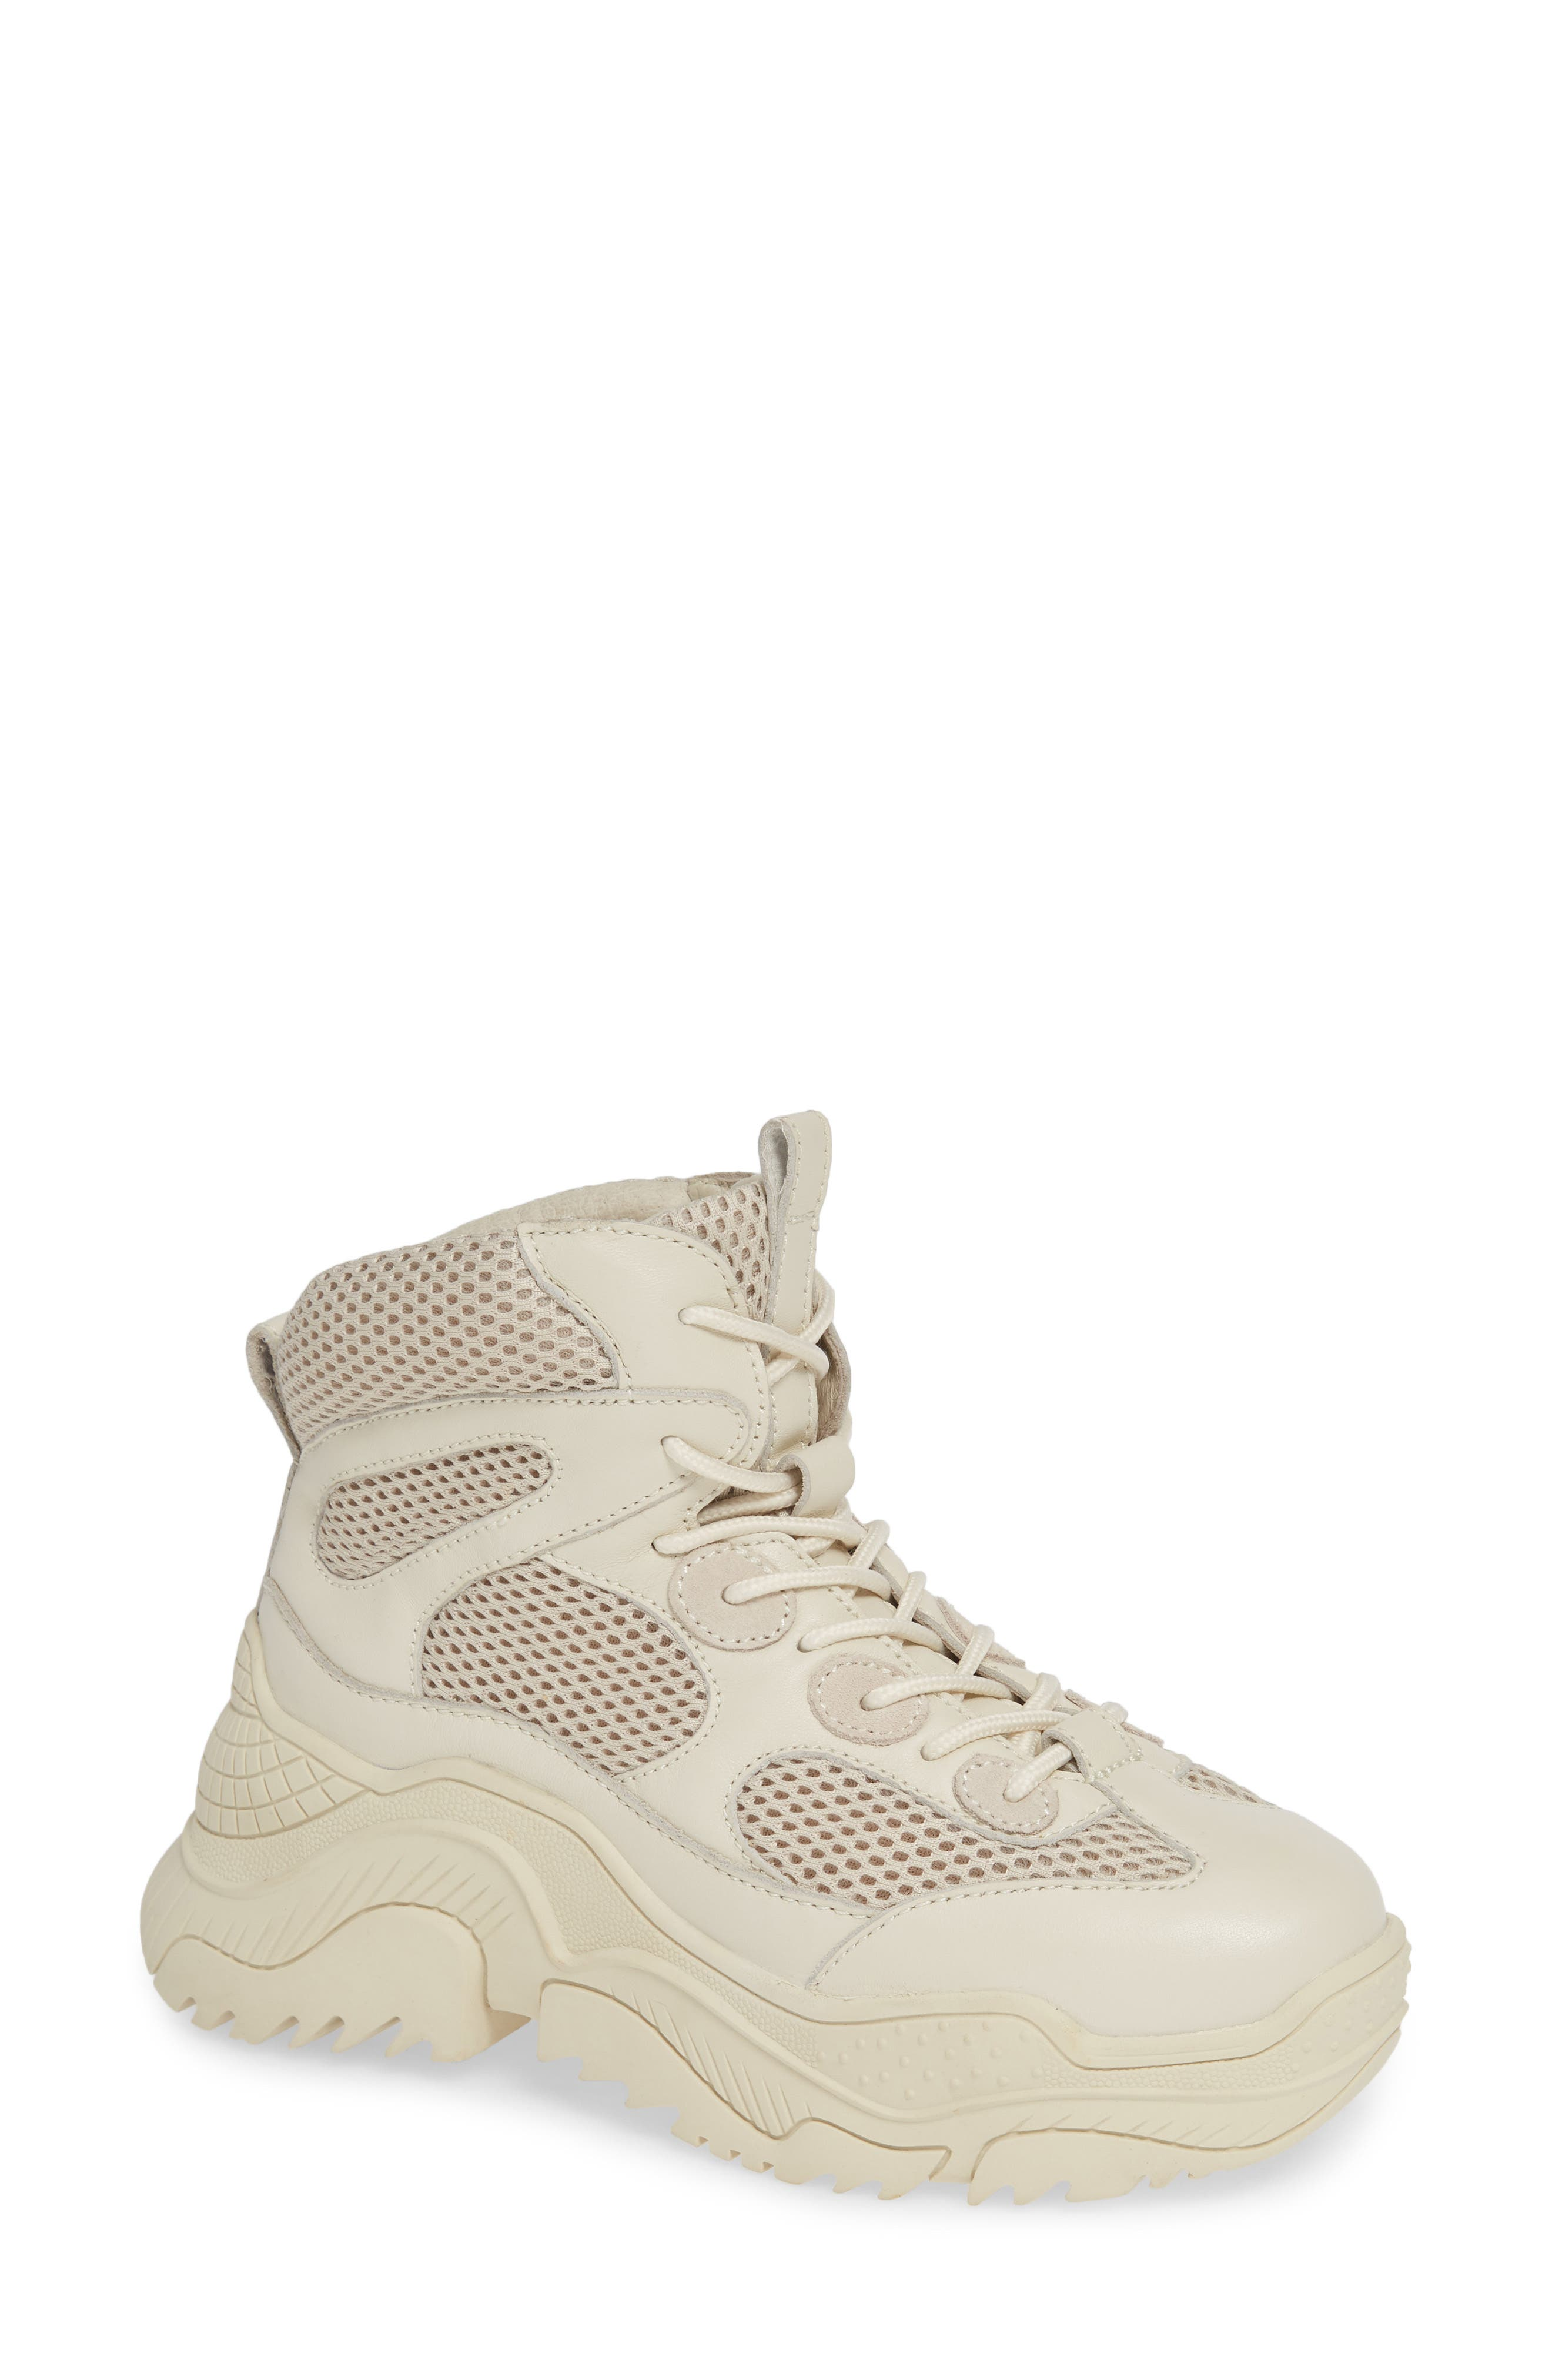 Pyro Wedge Sneaker Boot,                         Main,                         color, OFF WHITE COMBO